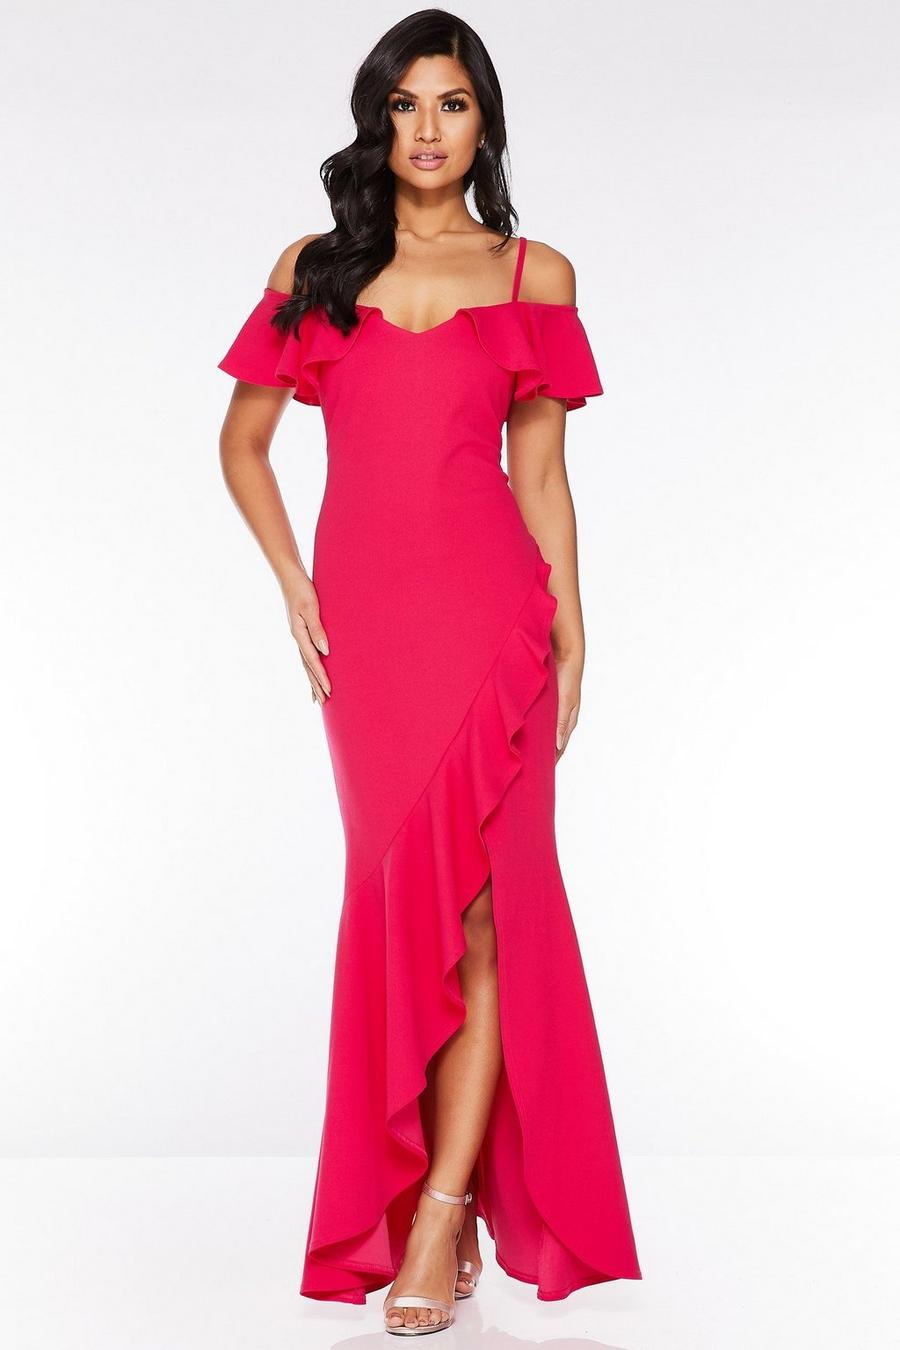 100% quality up-to-date styling big selection Hot Pink Cold Shoulder Frill Maxi Dress